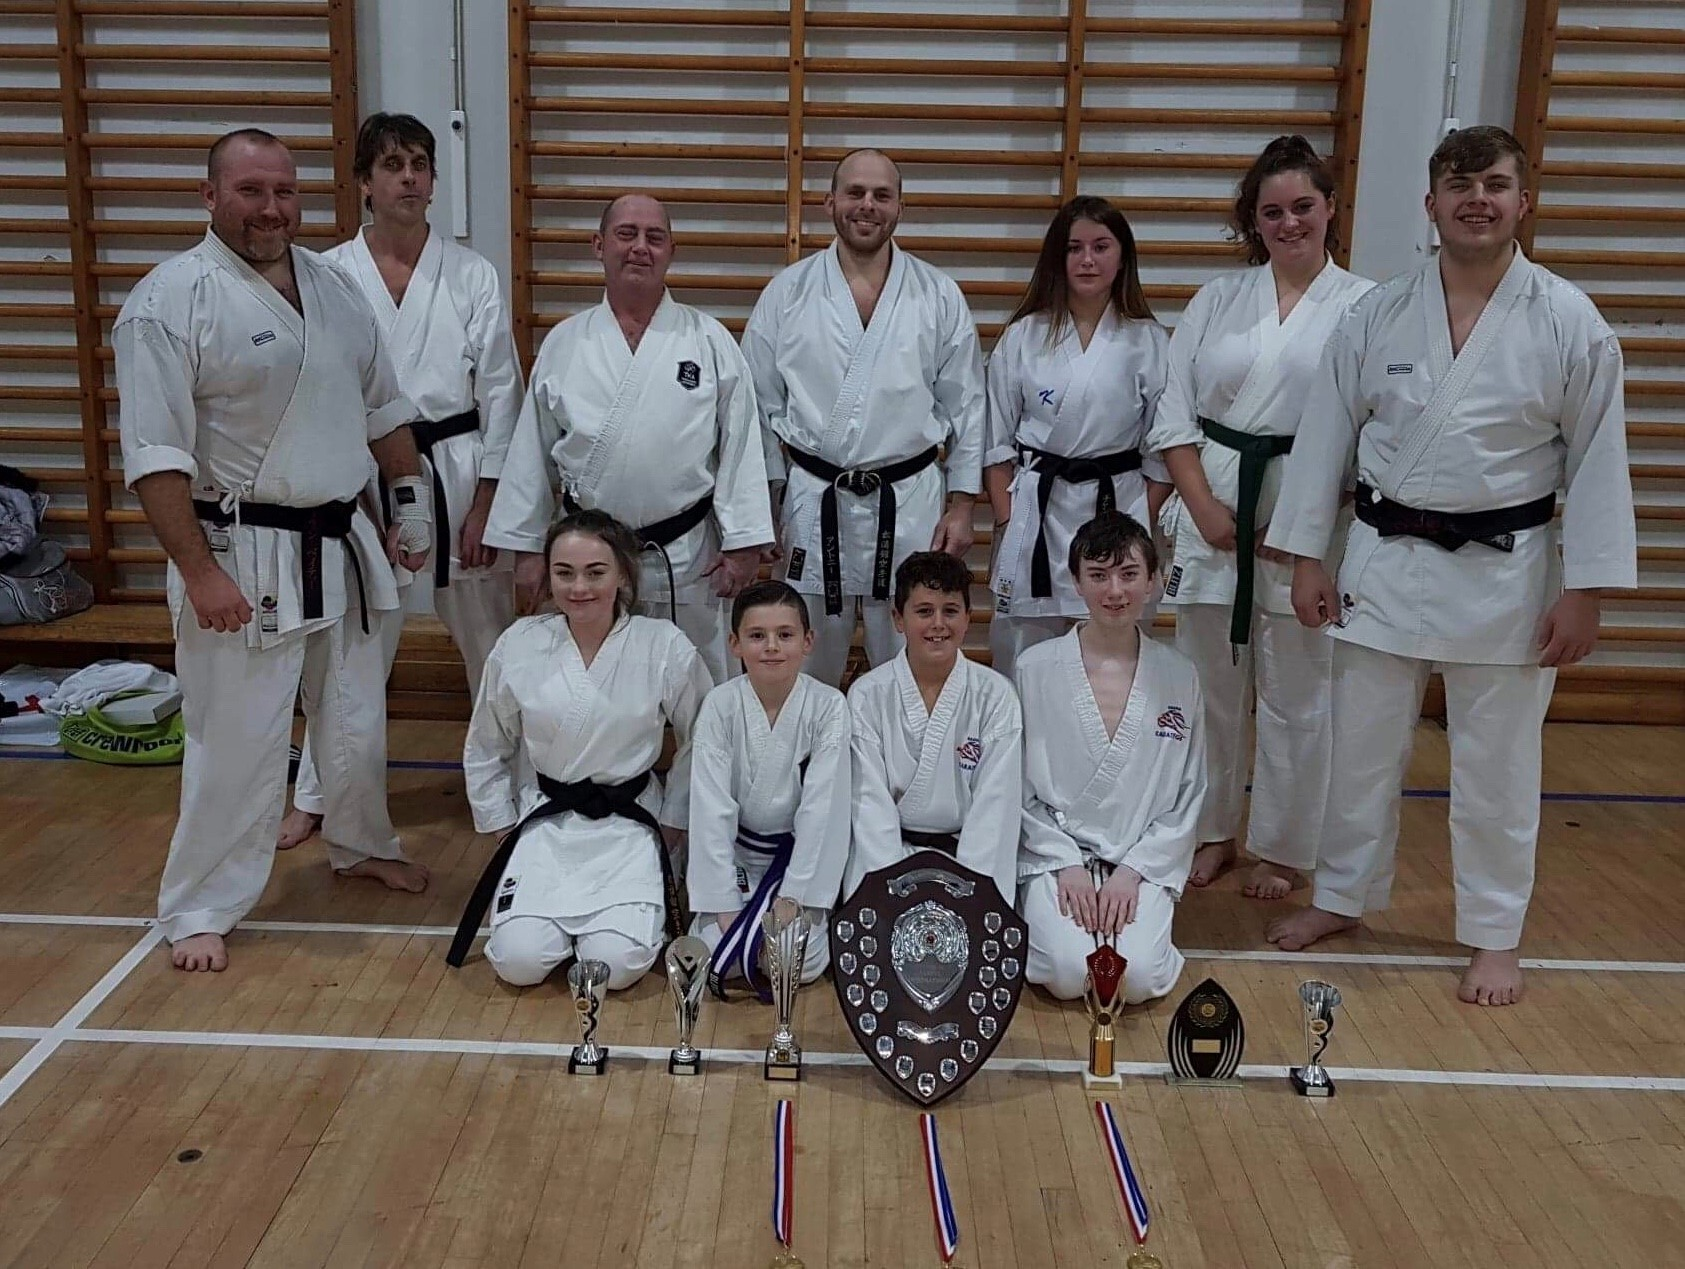 Success at the event was achieved by: back row (from left) Kev Beatty, Neil Richards, Warren Beatty, Antony Pendlebury, Alex Price, Jade Ward and Mark Simpson. Bottom row (left to right) Georgia Beatty, Charlie Standing, Luca Jones and Ryan Owen. Not pict